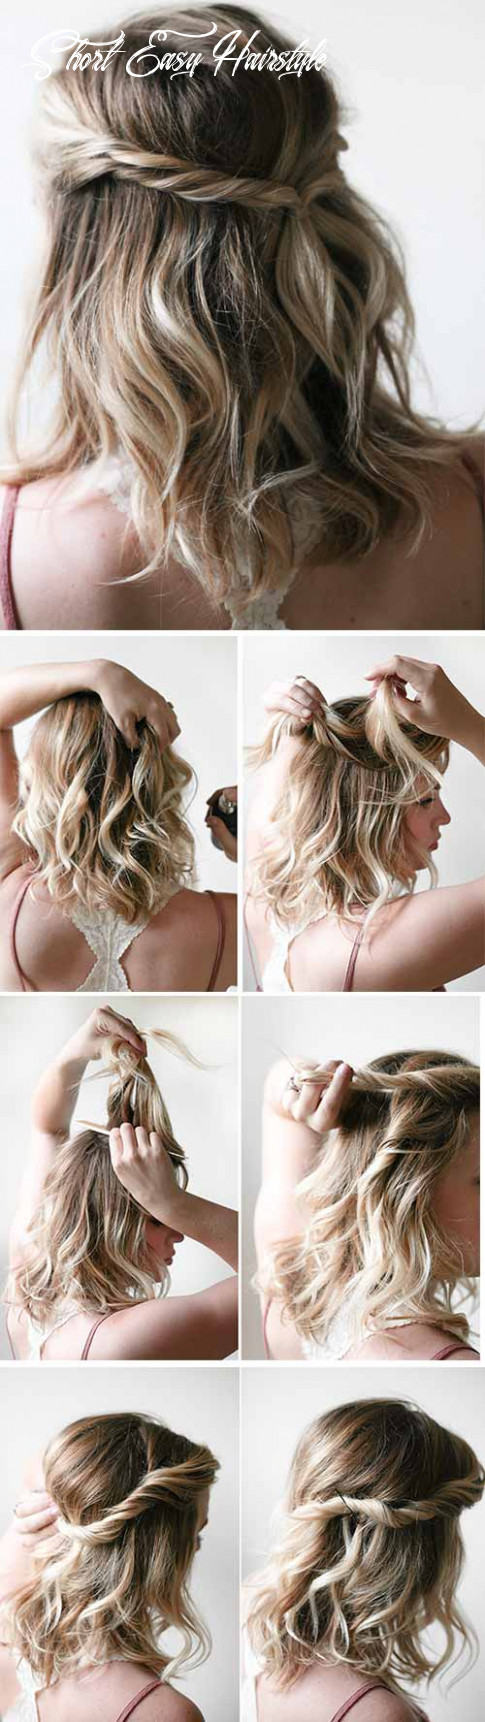 9 incredible diy short hairstyles a step by step guide short easy hairstyle